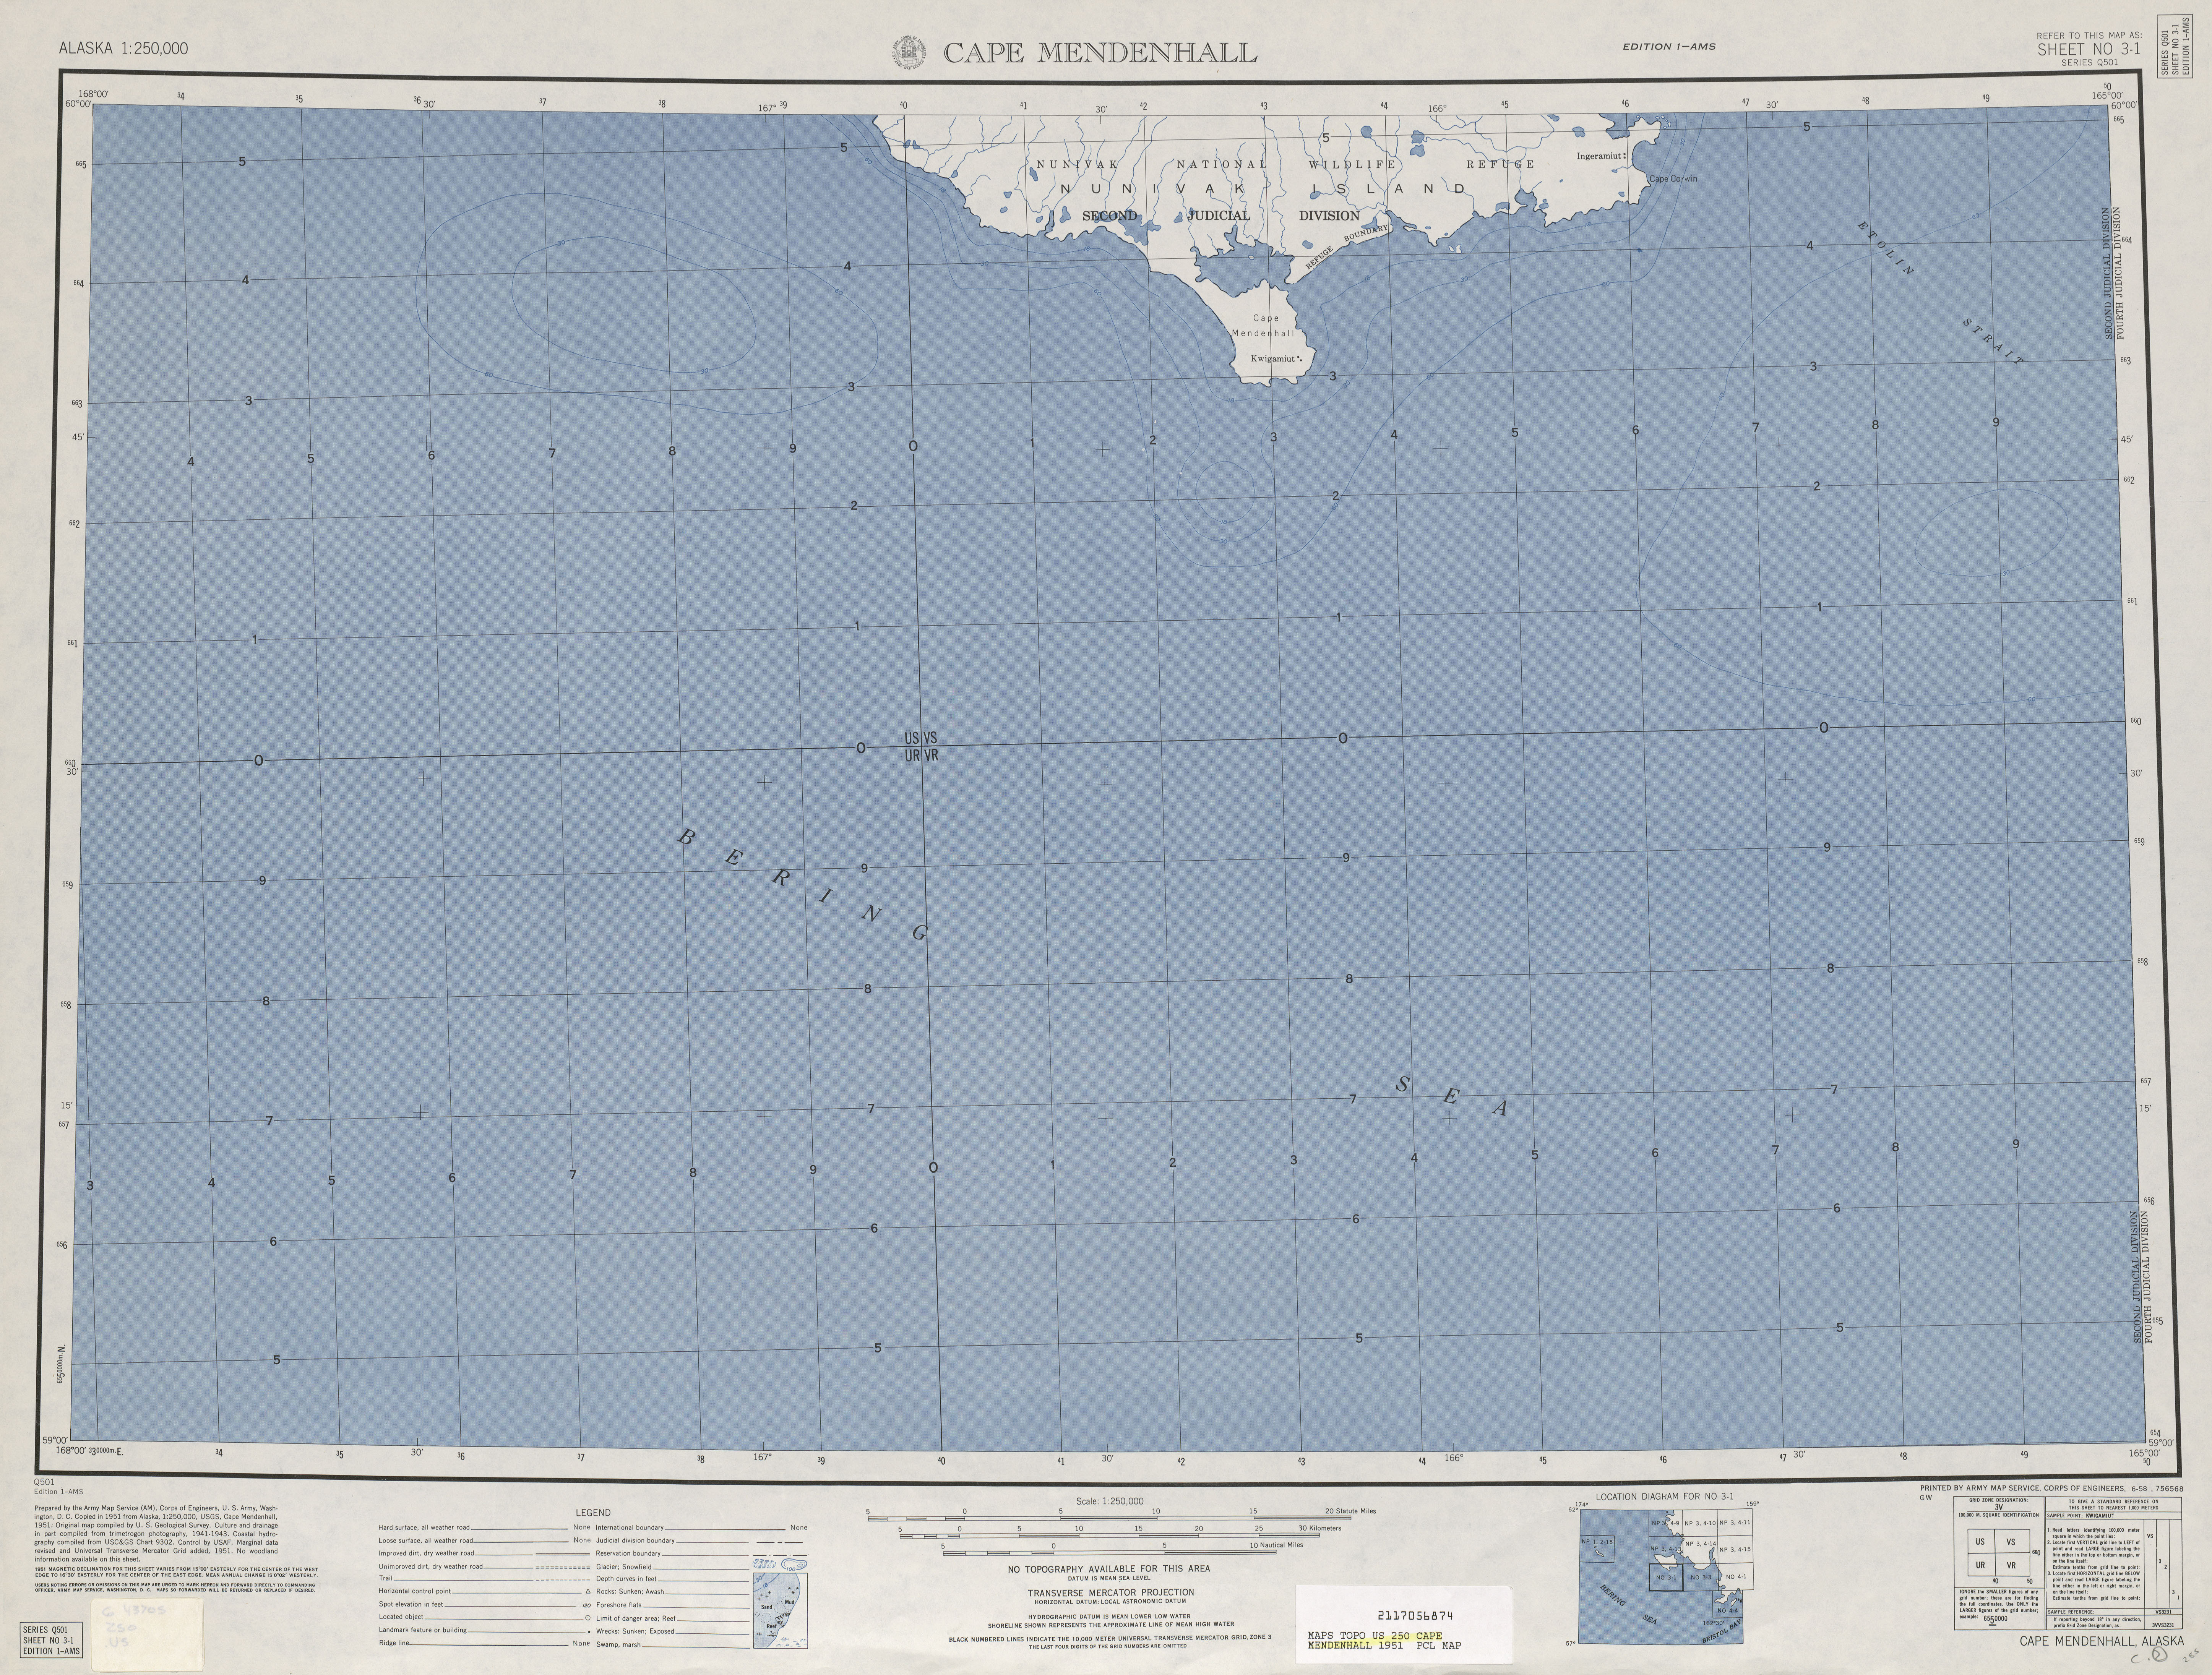 Cape Mendenhall Topographic Map Sheet, United States 1953